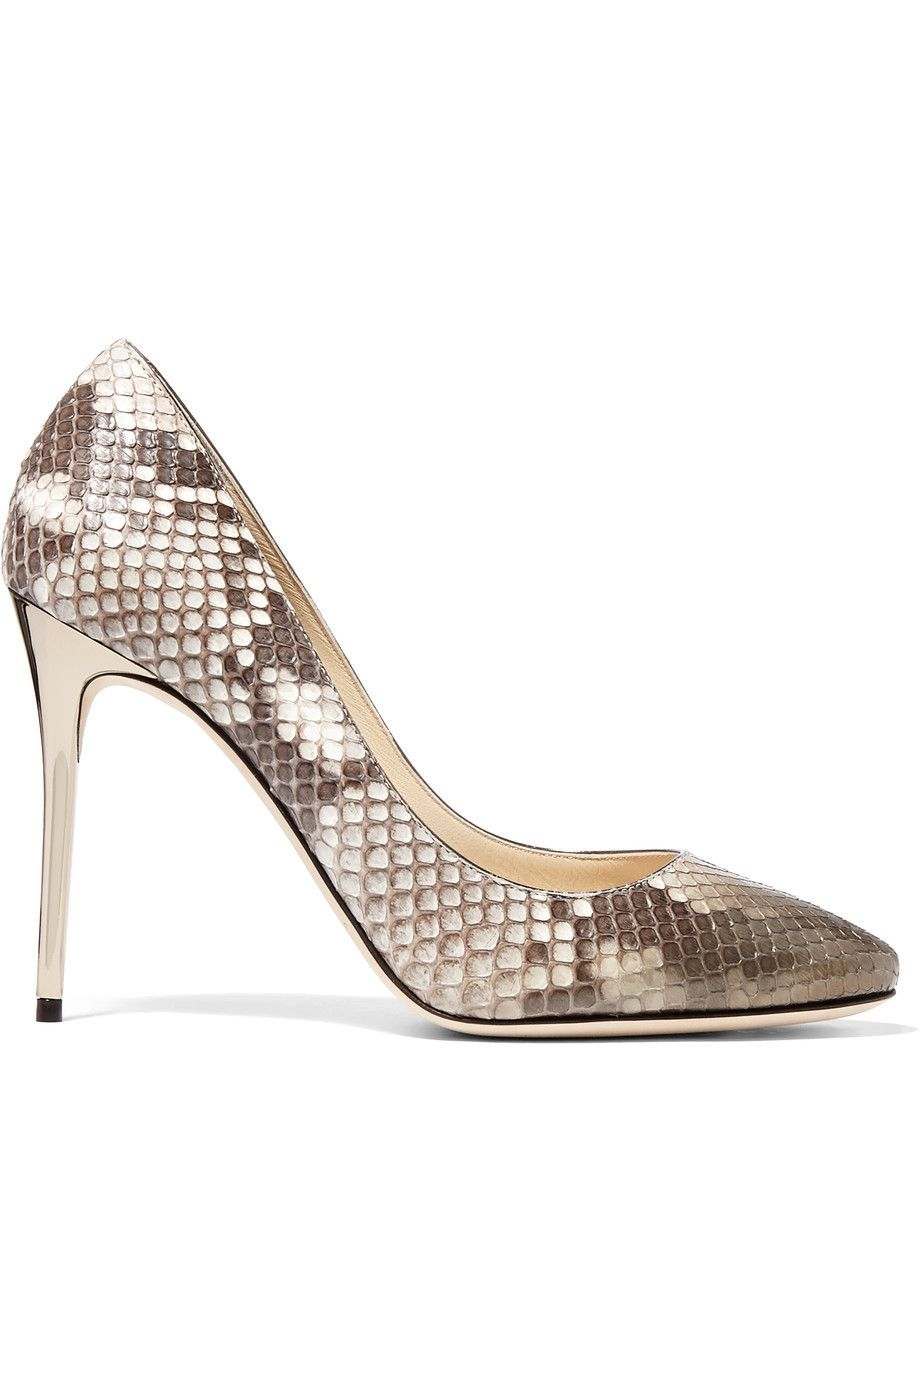 526a2ee620 ... norway jimmy choo esme dégradé python pumps. jimmychoo shoes pumps  dd5da eb95d